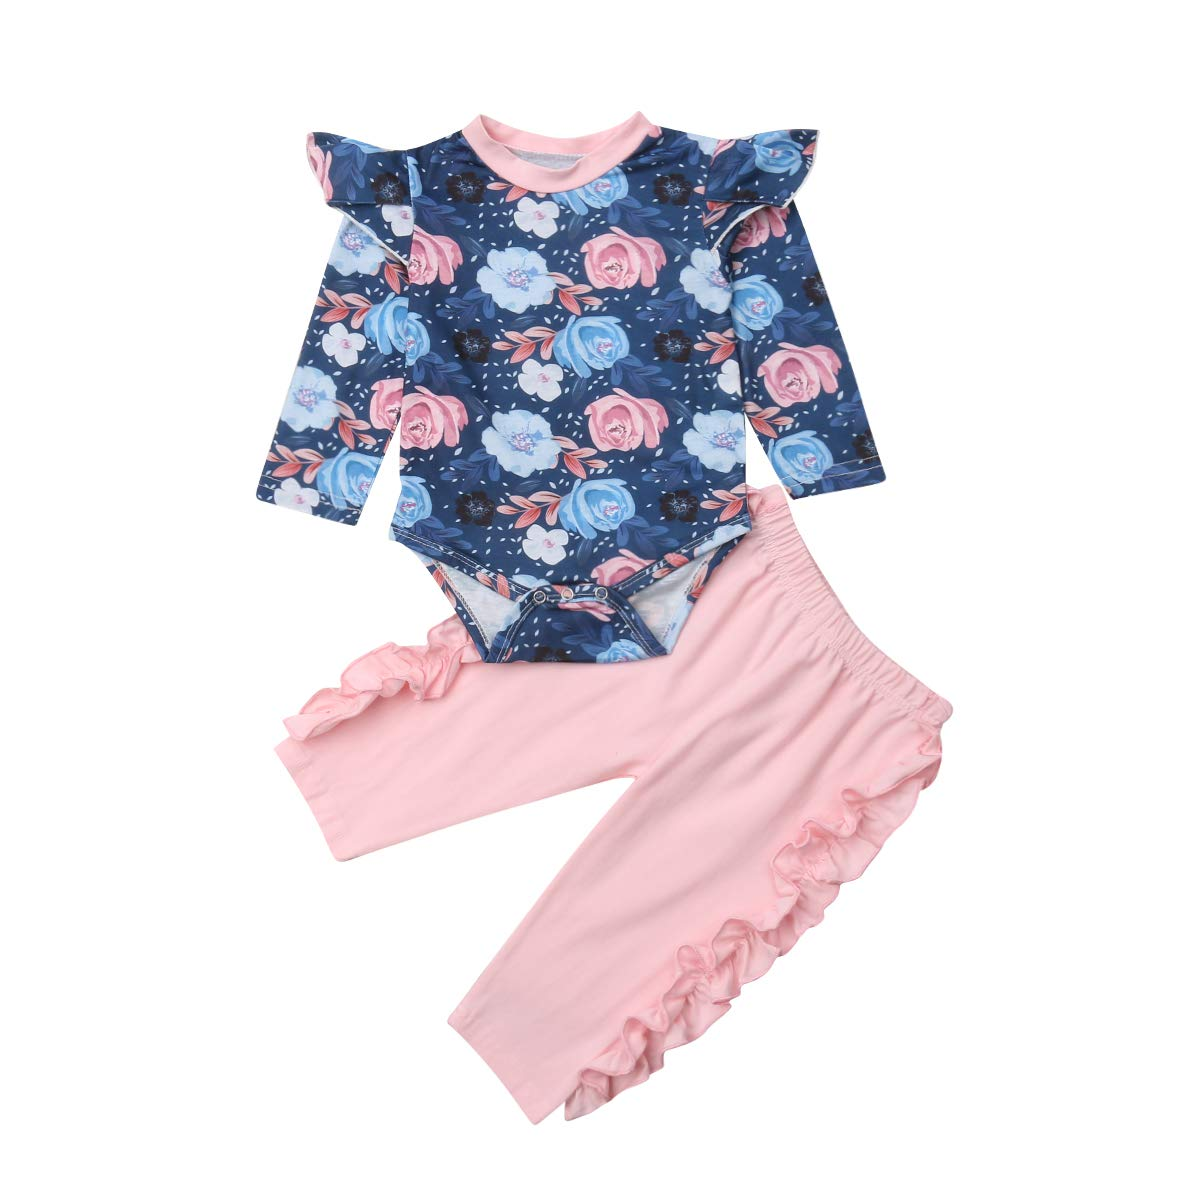 Glücklicher Käufer Unisex Baby Bodysuit Overall Floral Baumwolle Infant Casual Romper+Hose 2pc Ruffle Outfits Set